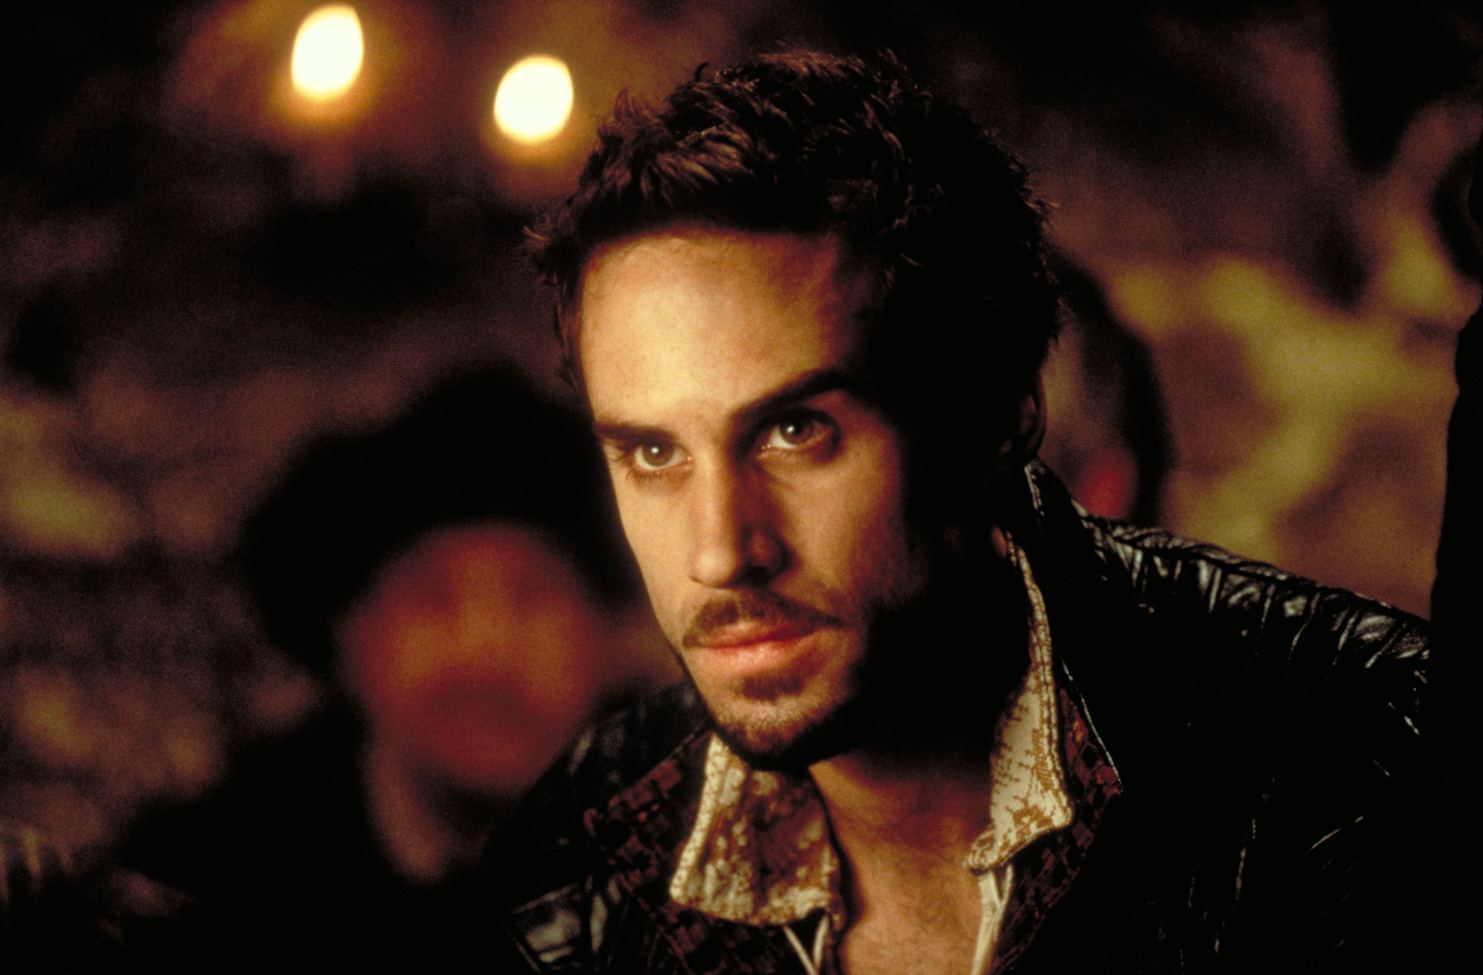 shakespeare in love Shakespeare in love (1998) was directed by john madden, written by marc norman and playwright tom stoppard.